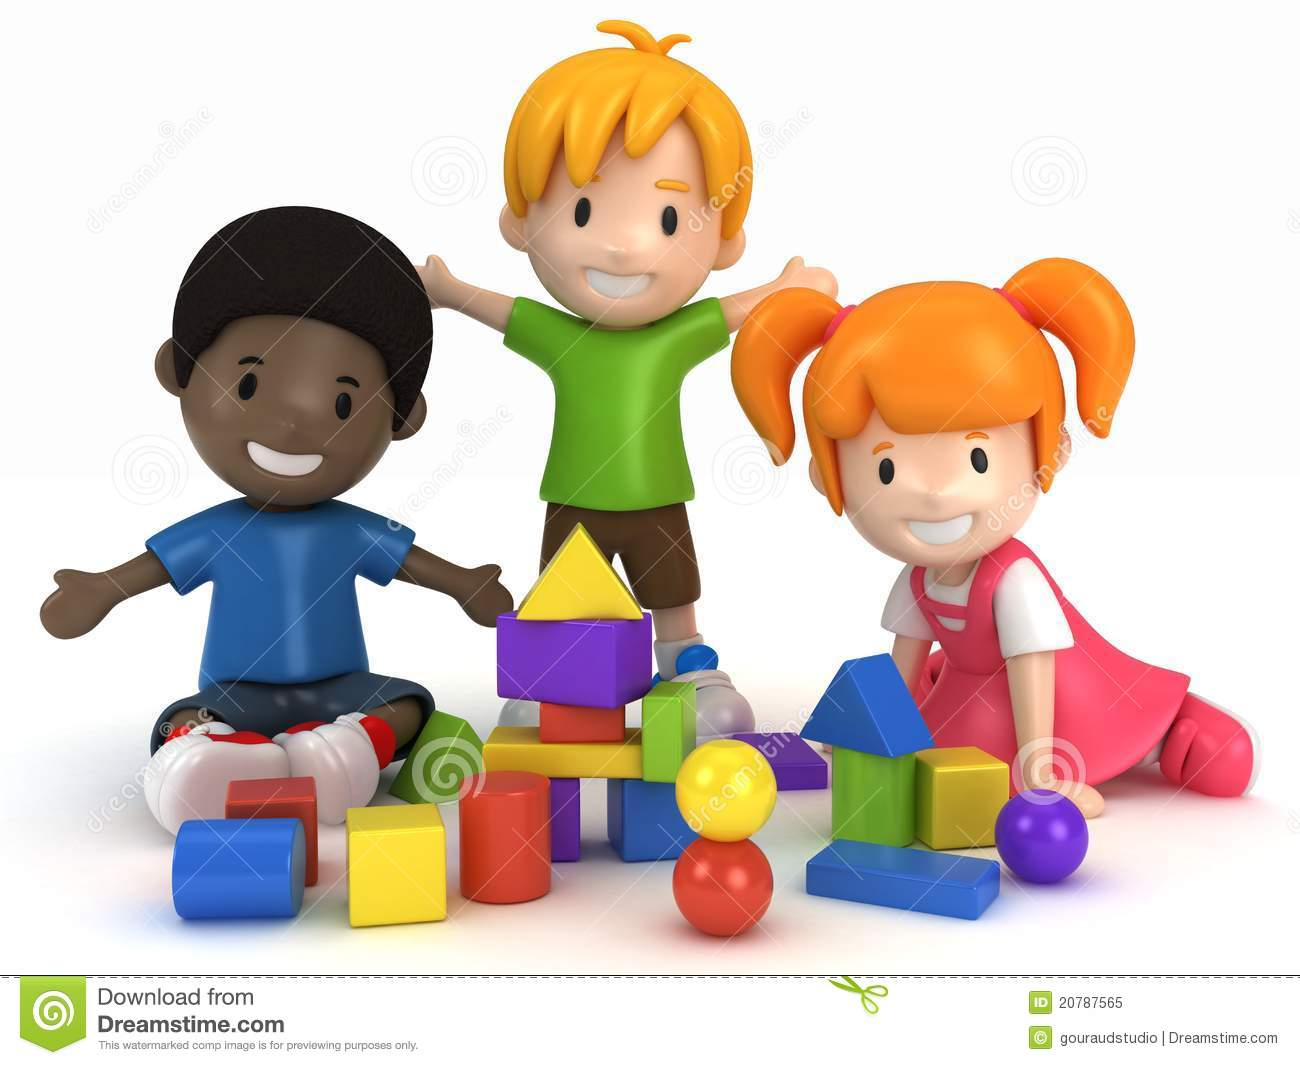 Construction Toys For Preschoolers : Kids playing building blocks stock illustration